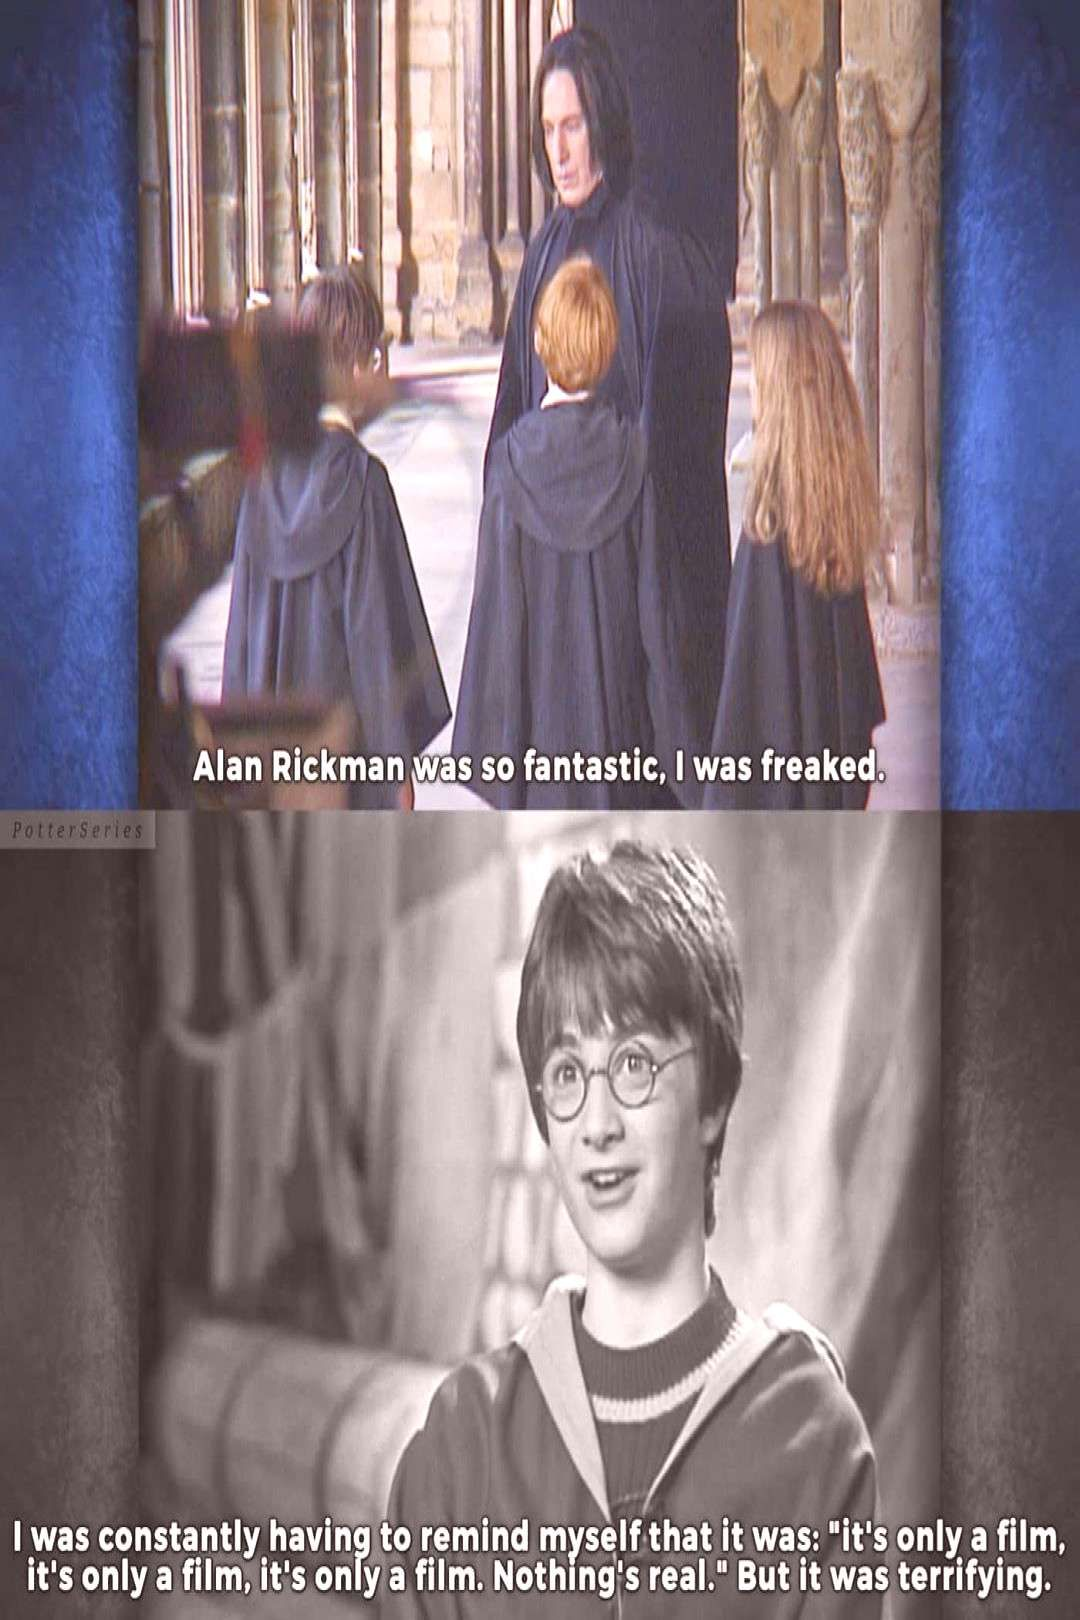 #peopletext #portrayed #professor #rickman #severus #snape #harry #alan #who #the #in #2 Alan Rickman, who portrayed Professor Severus Snape in the Harry You can find Prisoner of azkaban and more on our website.Alan R...